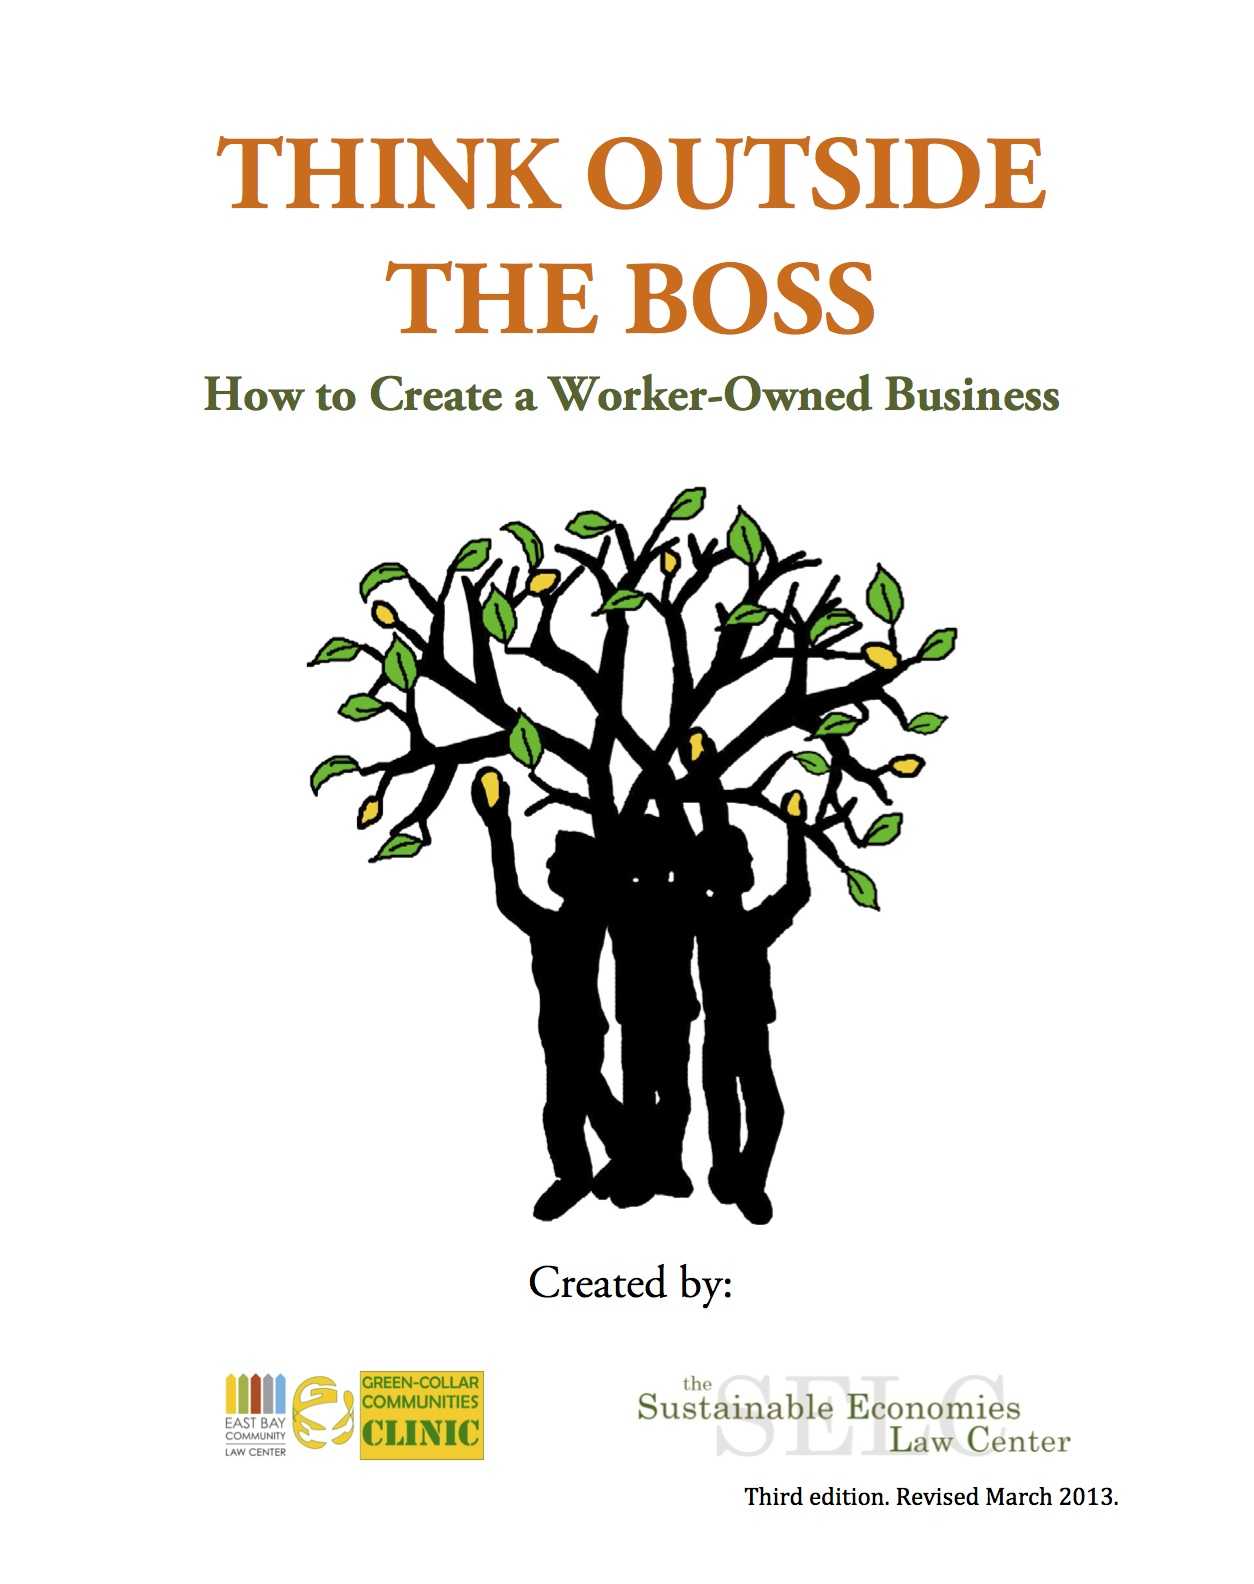 Think Outside the Boss Manual!